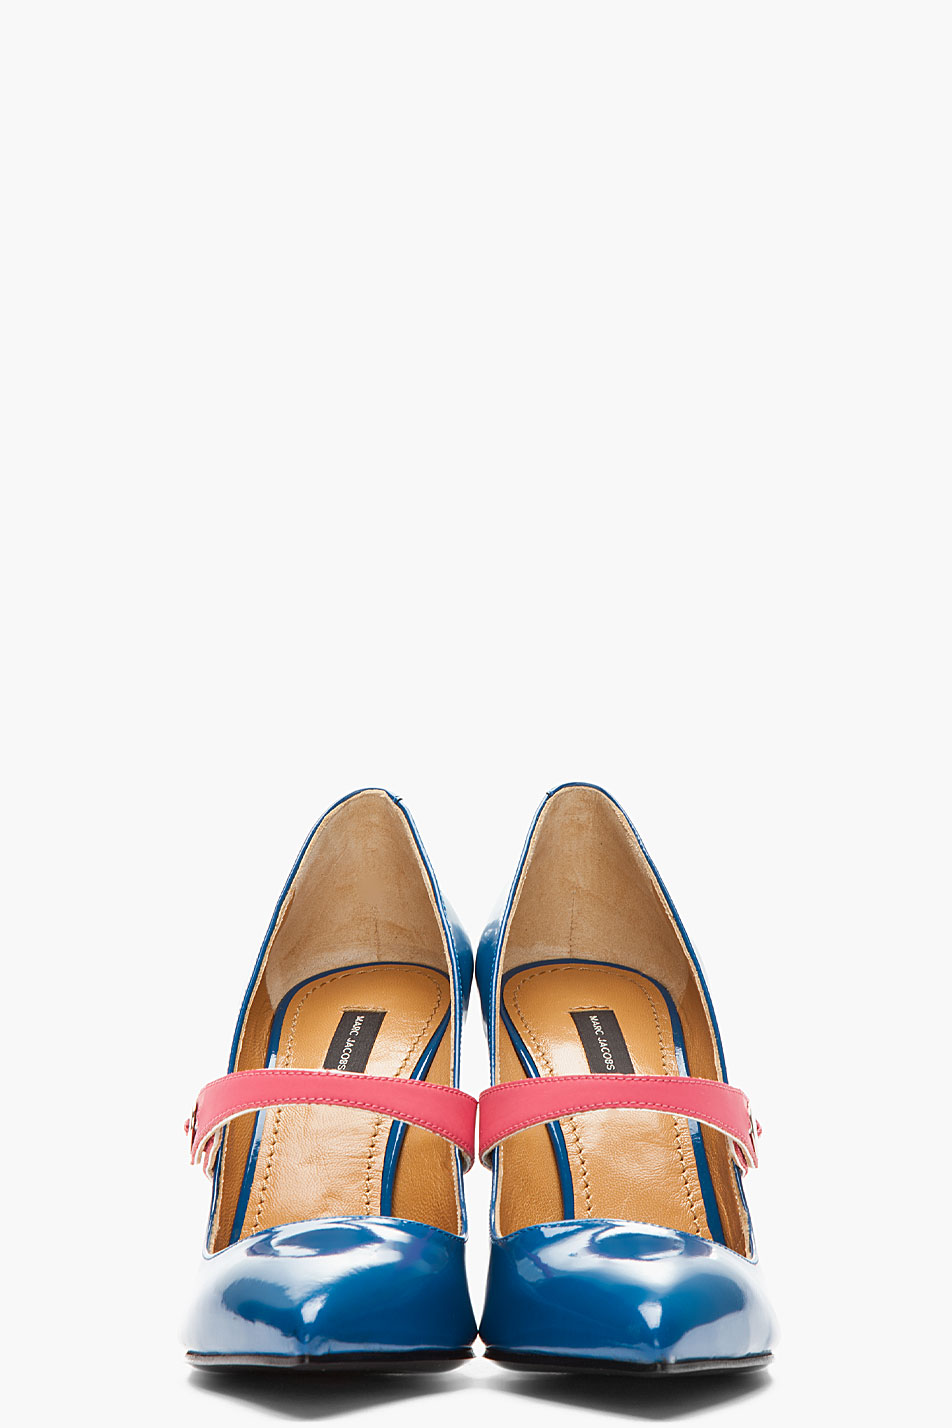 Lyst Marc Jacobs Patent Blue Pinkstrapped Heels In Blue